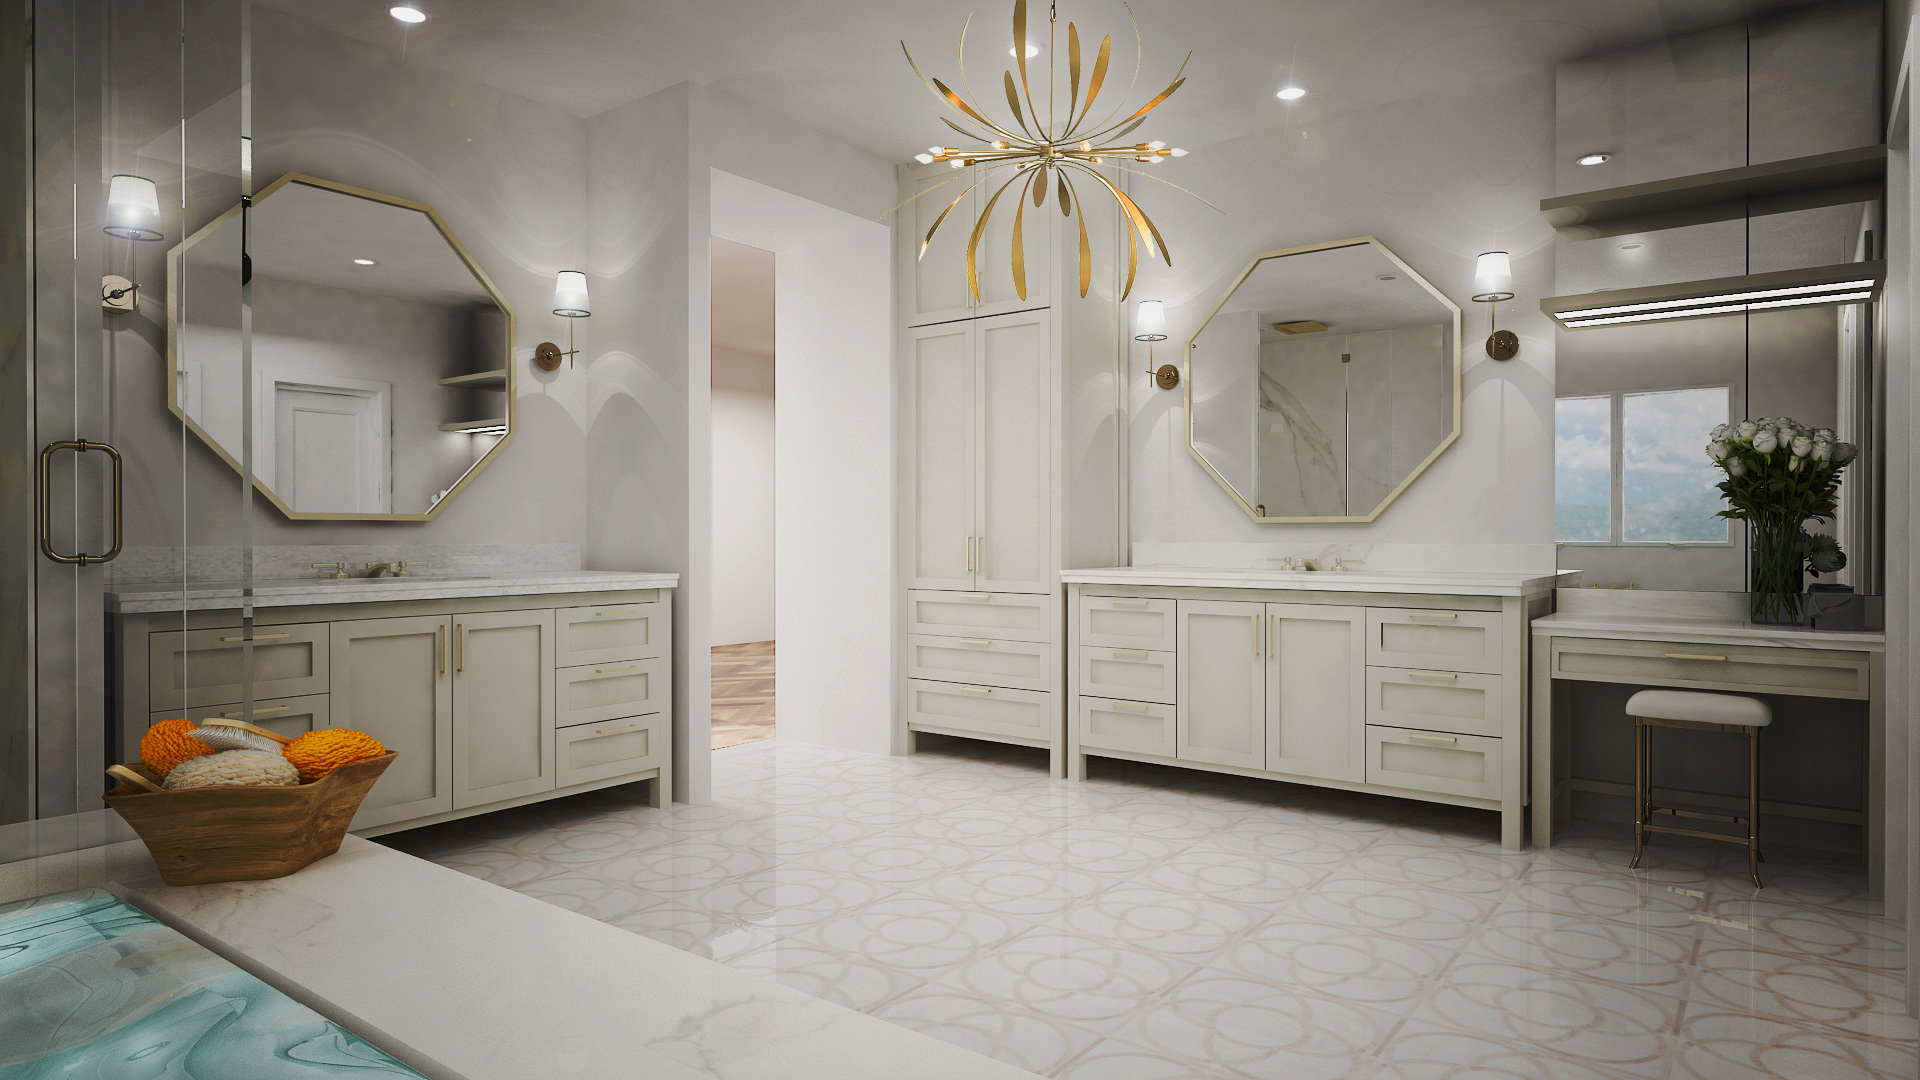 Matser Bathroom Rendering 02.jpg